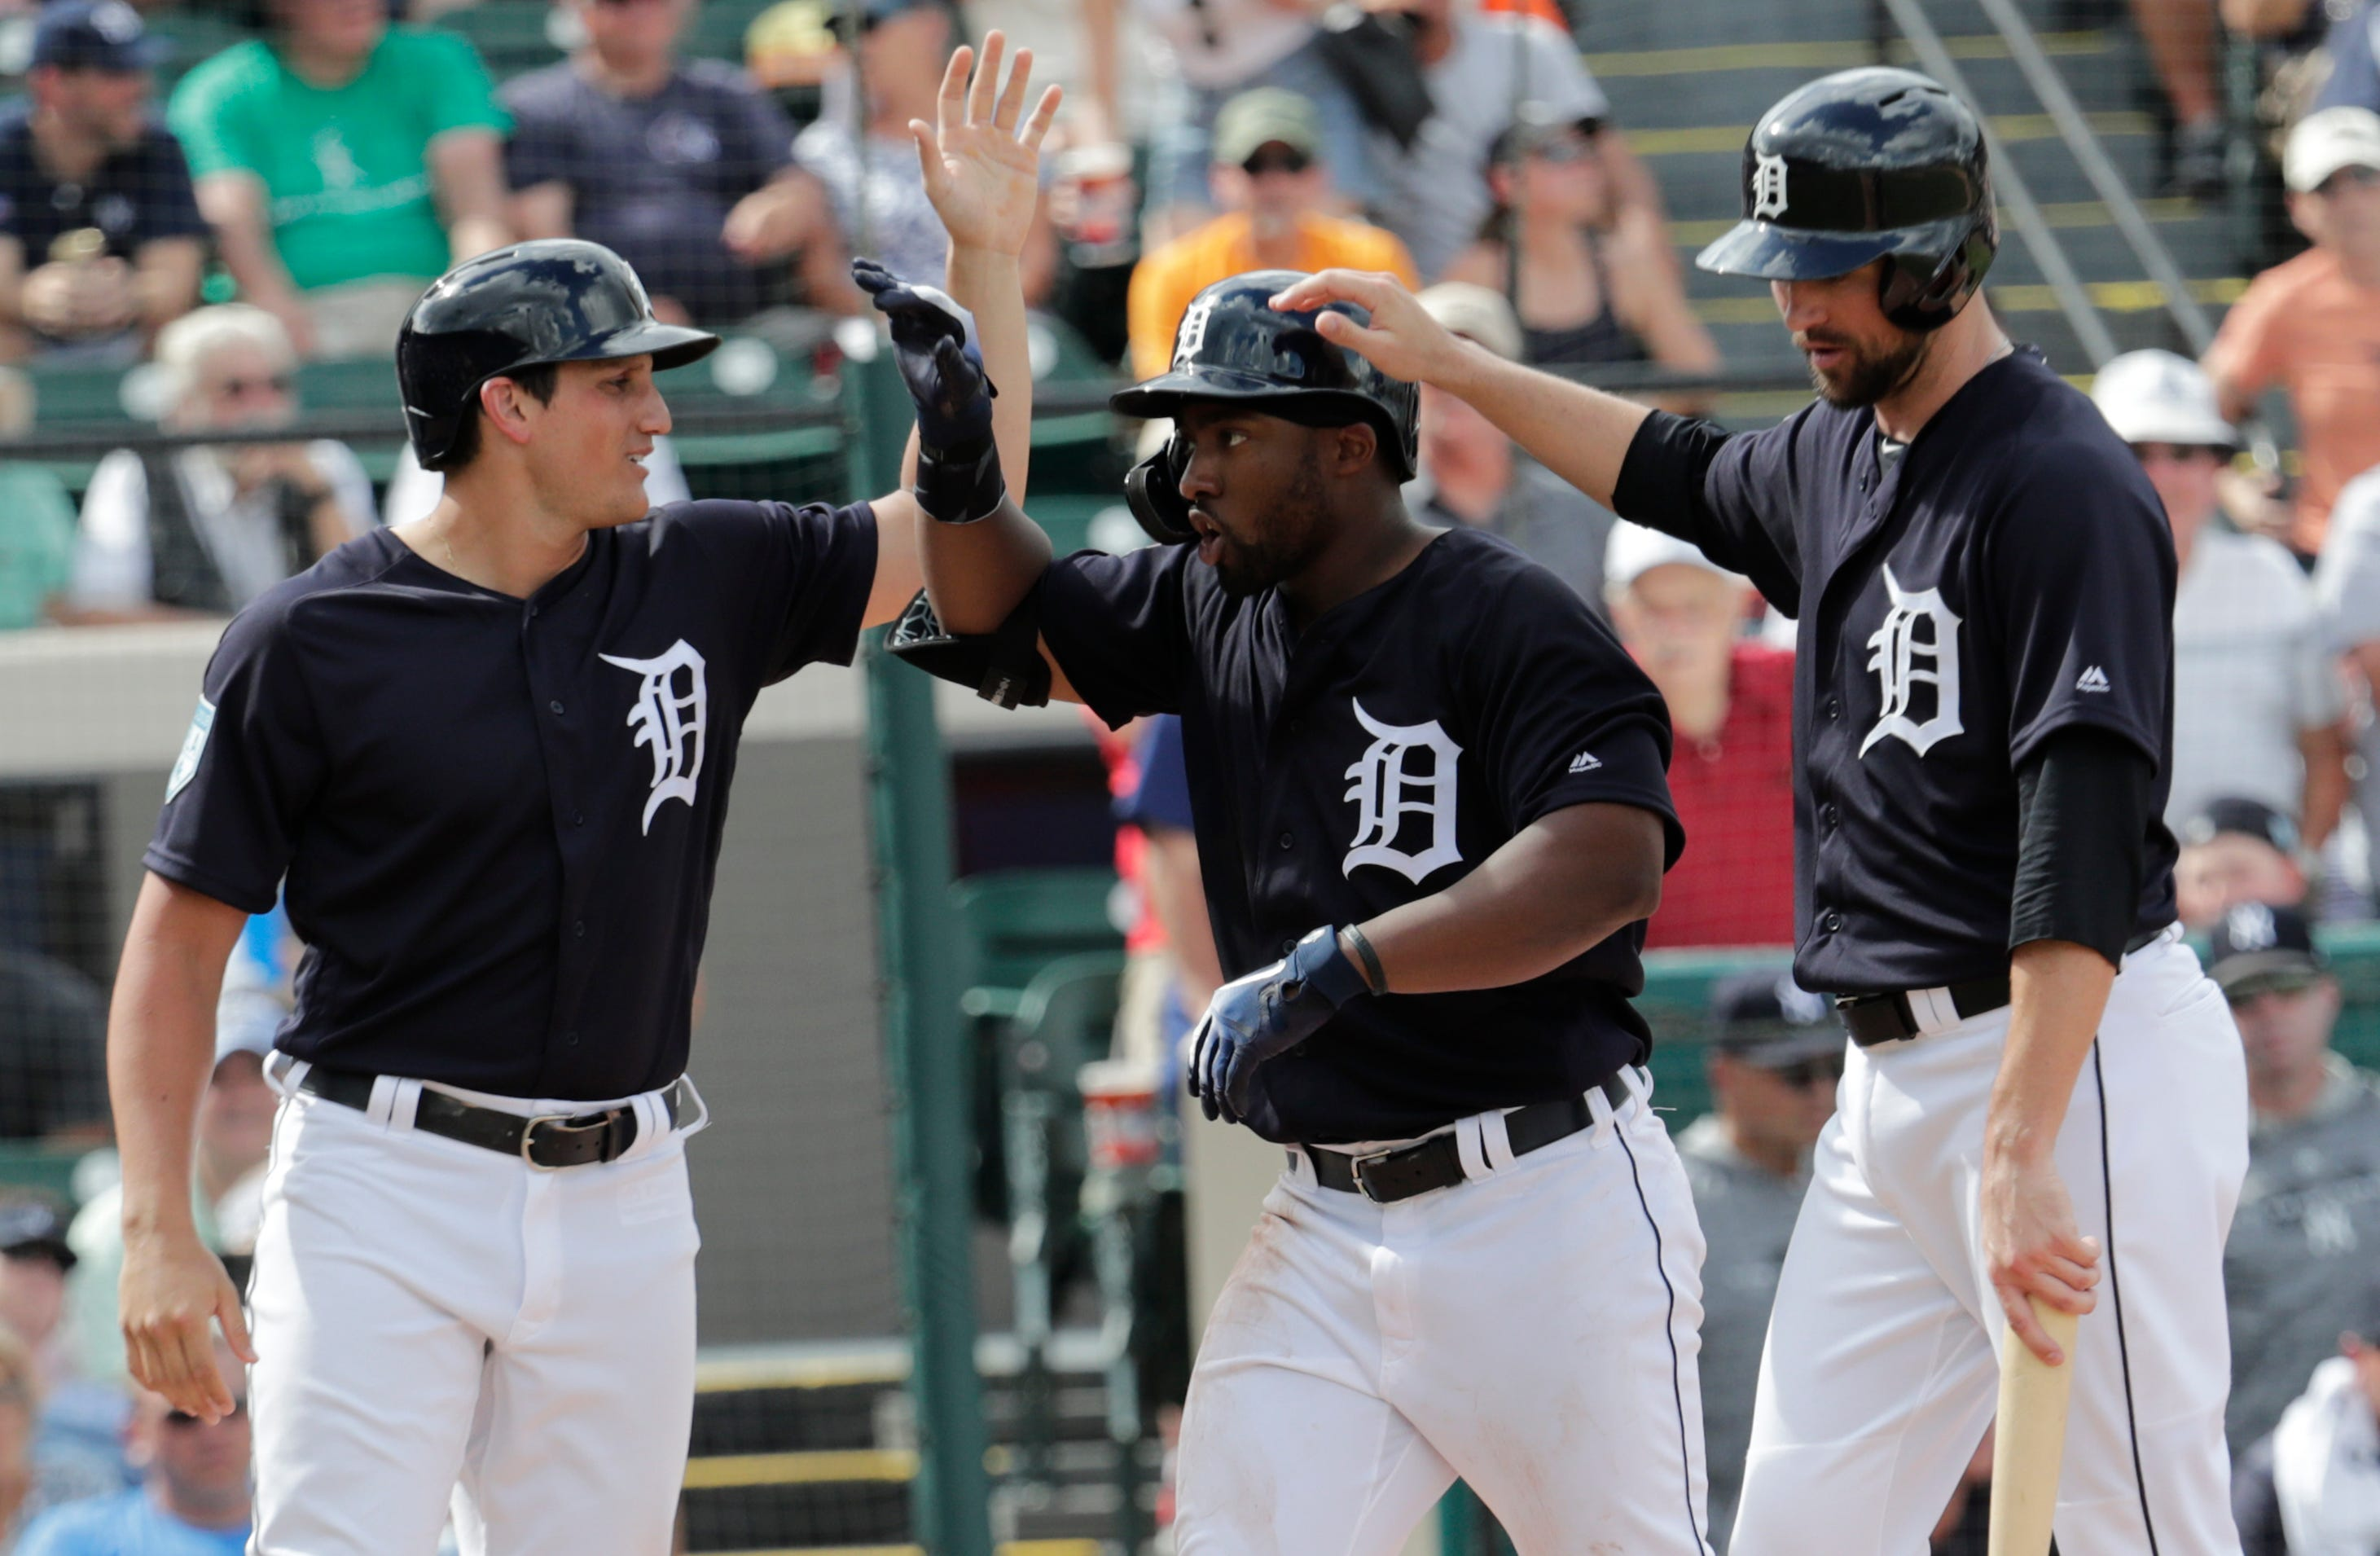 Tigers left fielder Christin Stewart, center, is congratulated by Jordy Mercer, left, and Mikie Mahtook after hitting a grand slam in the third inning of the spring training baseball game against the Yankees on Wednesday, Feb. 27, 2019, in Lakeland, Fla.